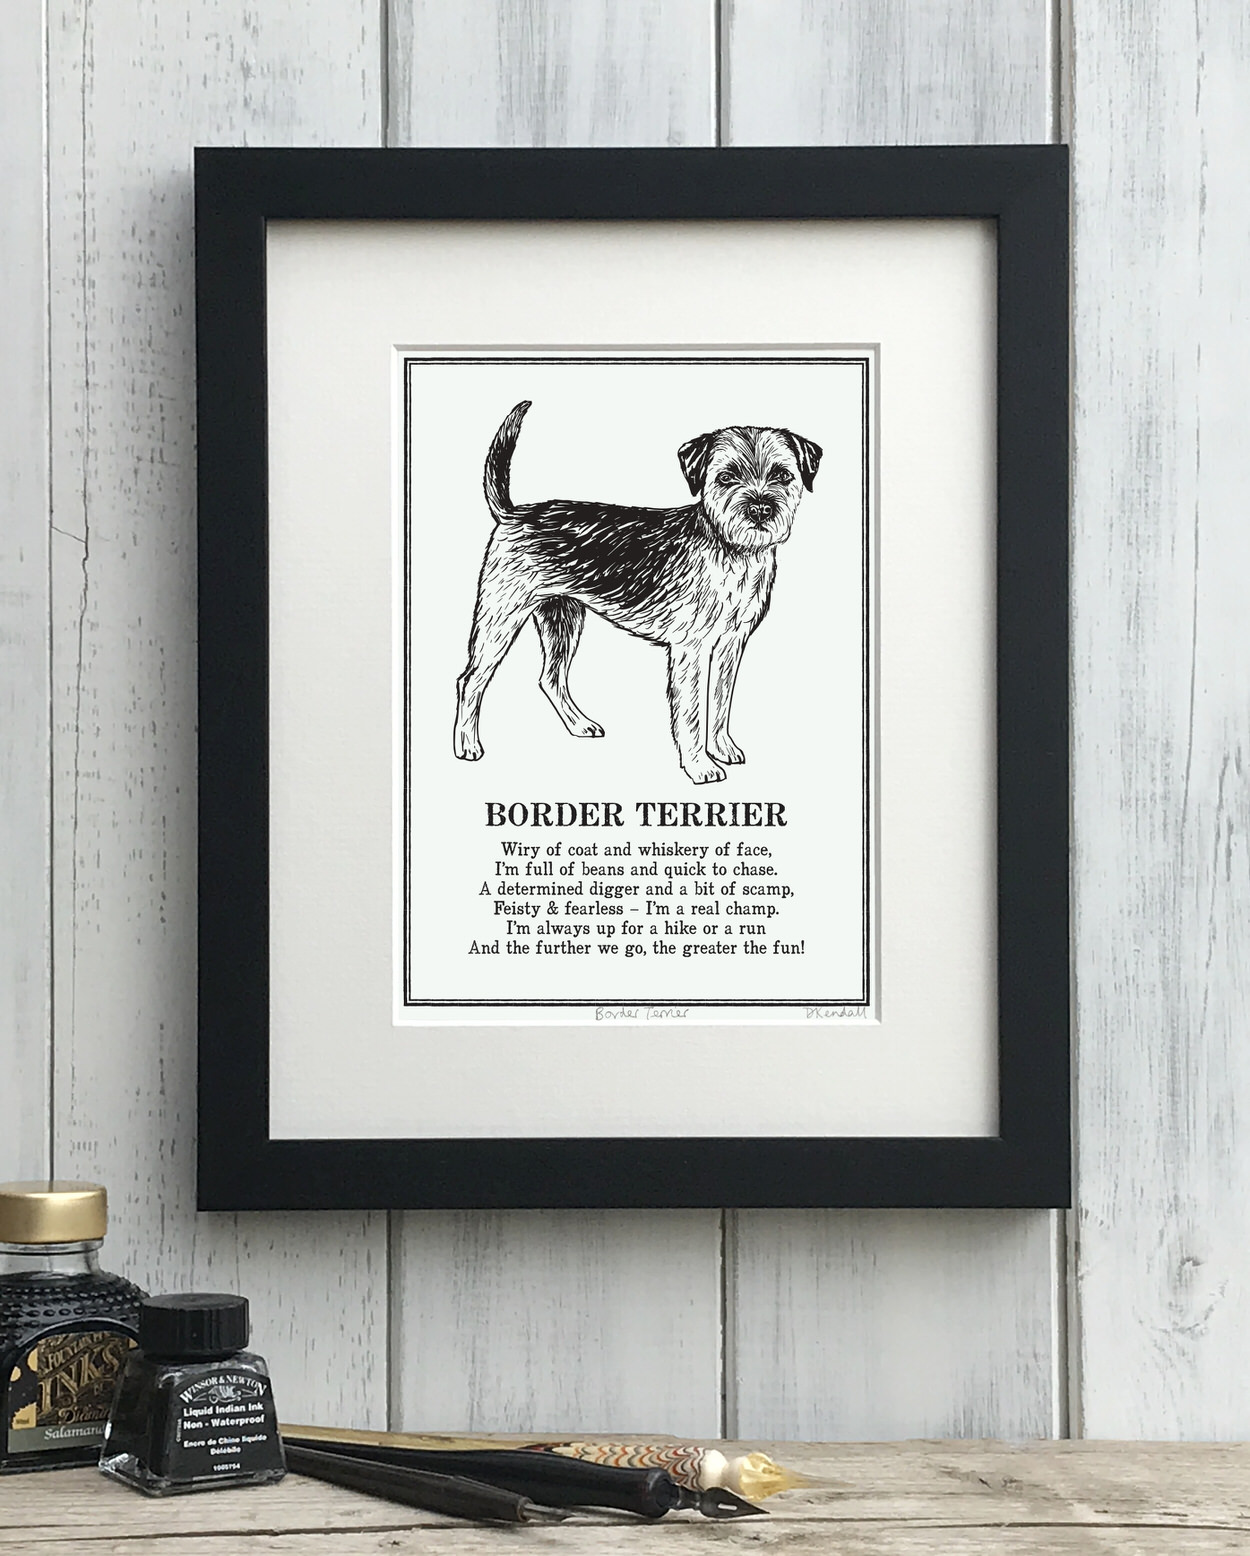 Border Terrier print illustrated poem by The Enlightened Hound